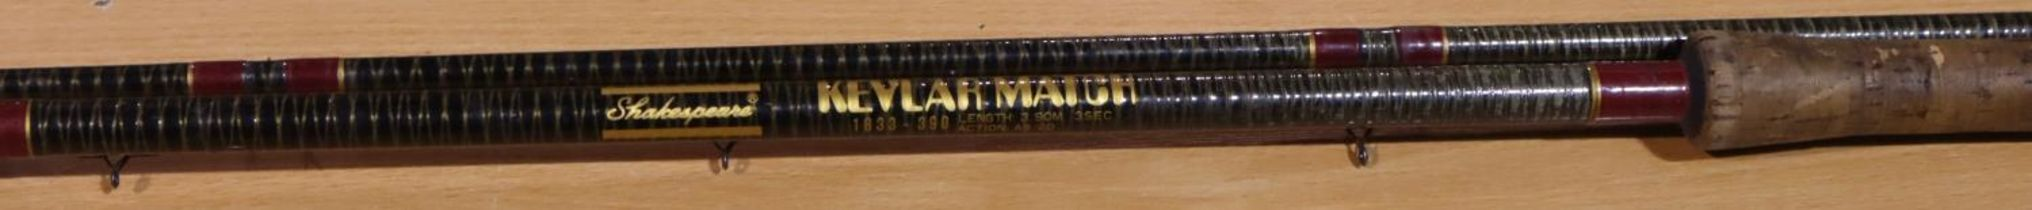 Vintage 13ft kevlar tip rod. P&P Group 3 (£25+VAT for the first lot and £5+VAT for subsequent lots)